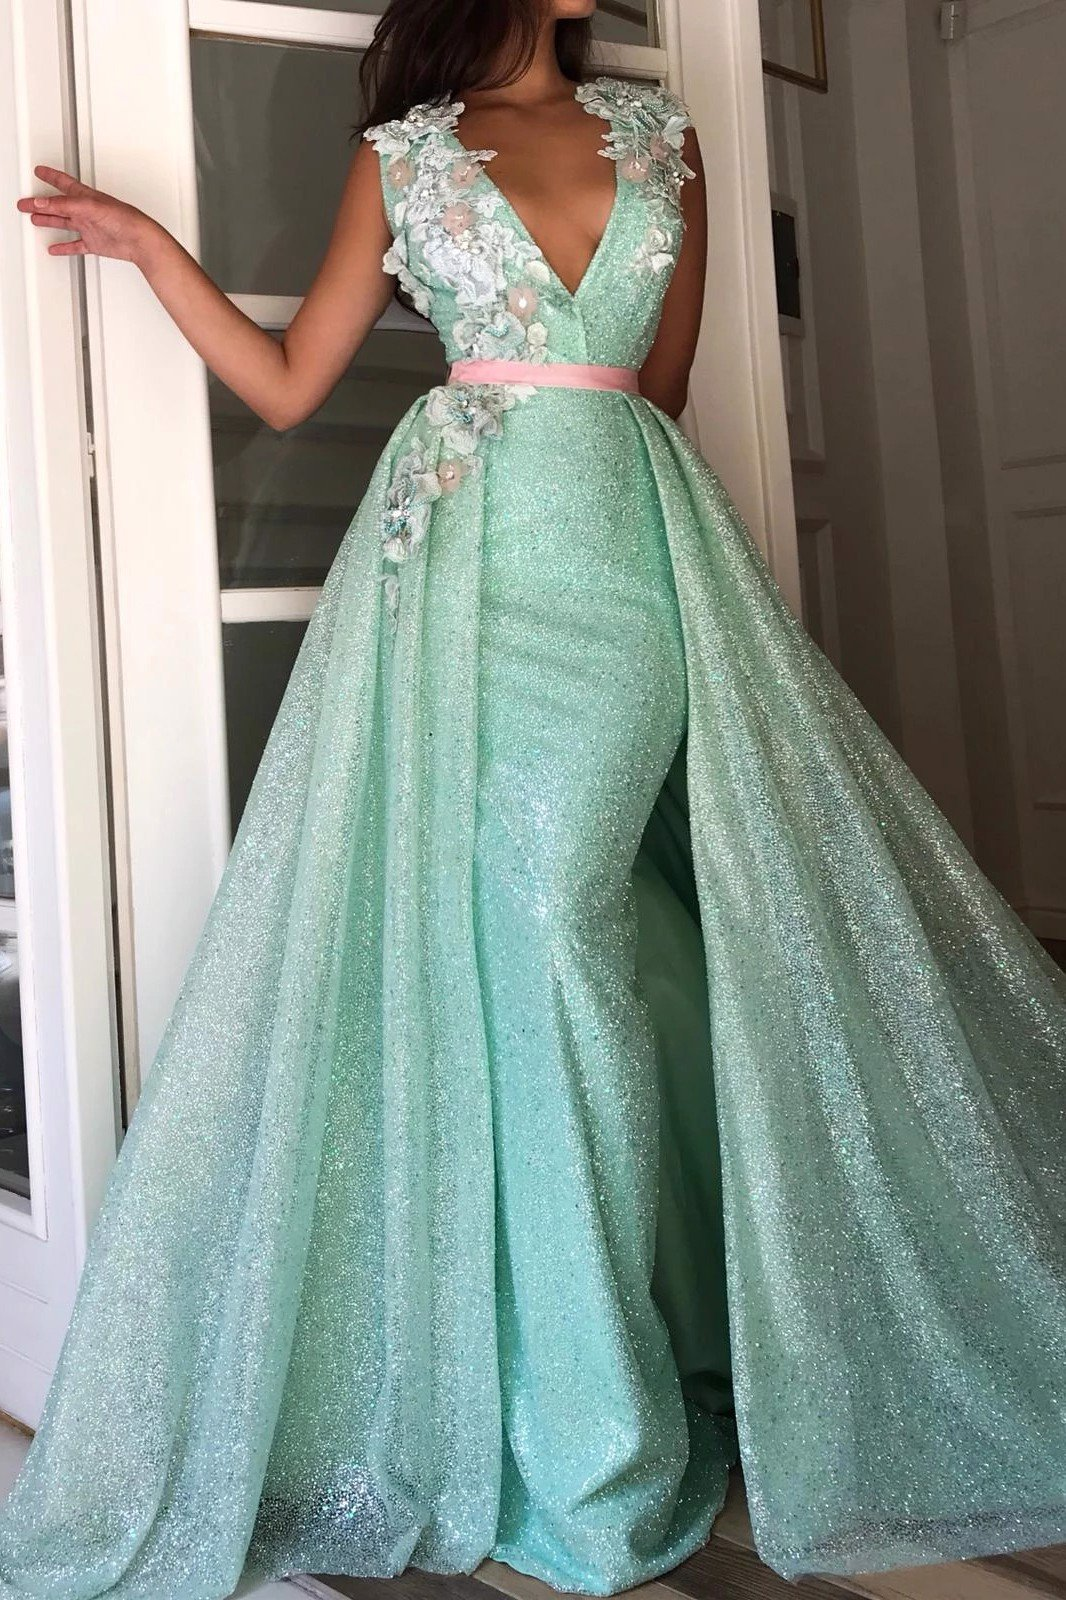 Turquoise Flowery Cusp TMD Gown